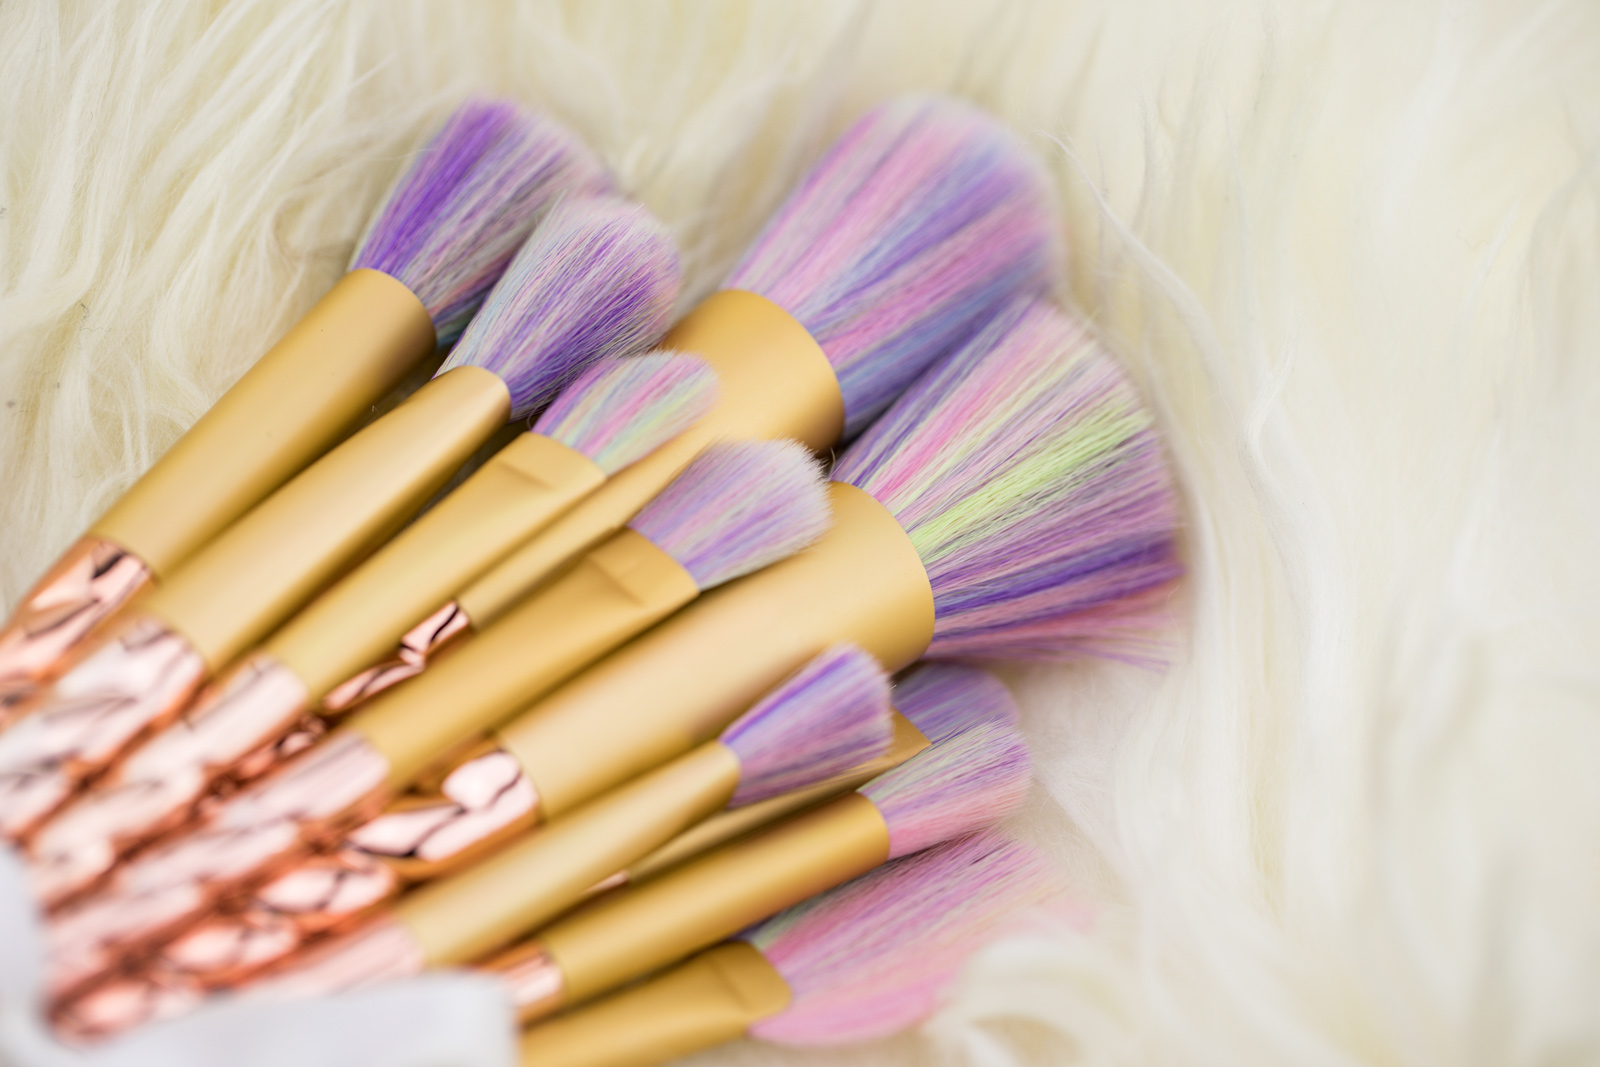 Foto-by-Nadja-Nemetz-Wien-wienerblogger-blogger-beautyblogger_lifestyleblogger-lifestyle-beauty-newin-new-in-musthaves-must-haves-unicorn-einhorn-brushes-makeupbrushes-makeup-schminkpinsel-einhornpinsel-regenbogenpinsel-2